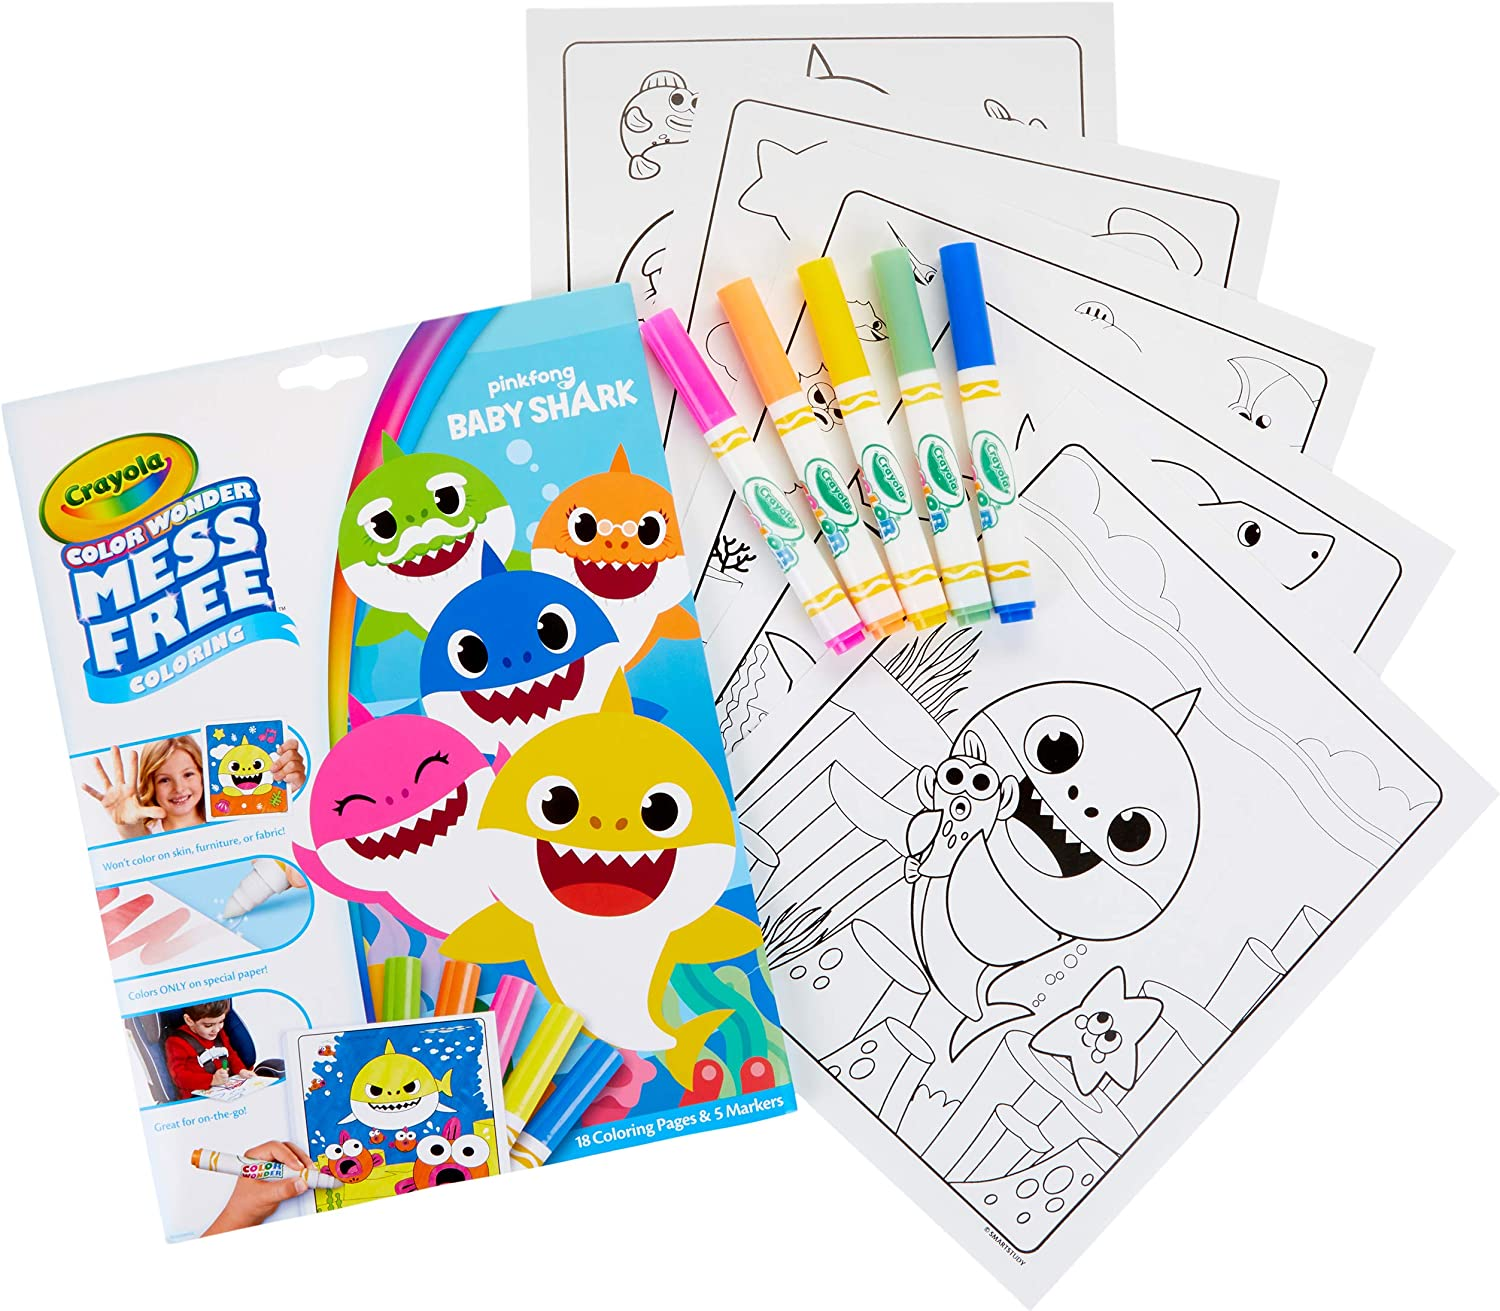 Amazon Com Crayola Baby Shark Wonder Pages Mess Free Coloring Gift For Kids Toys Games